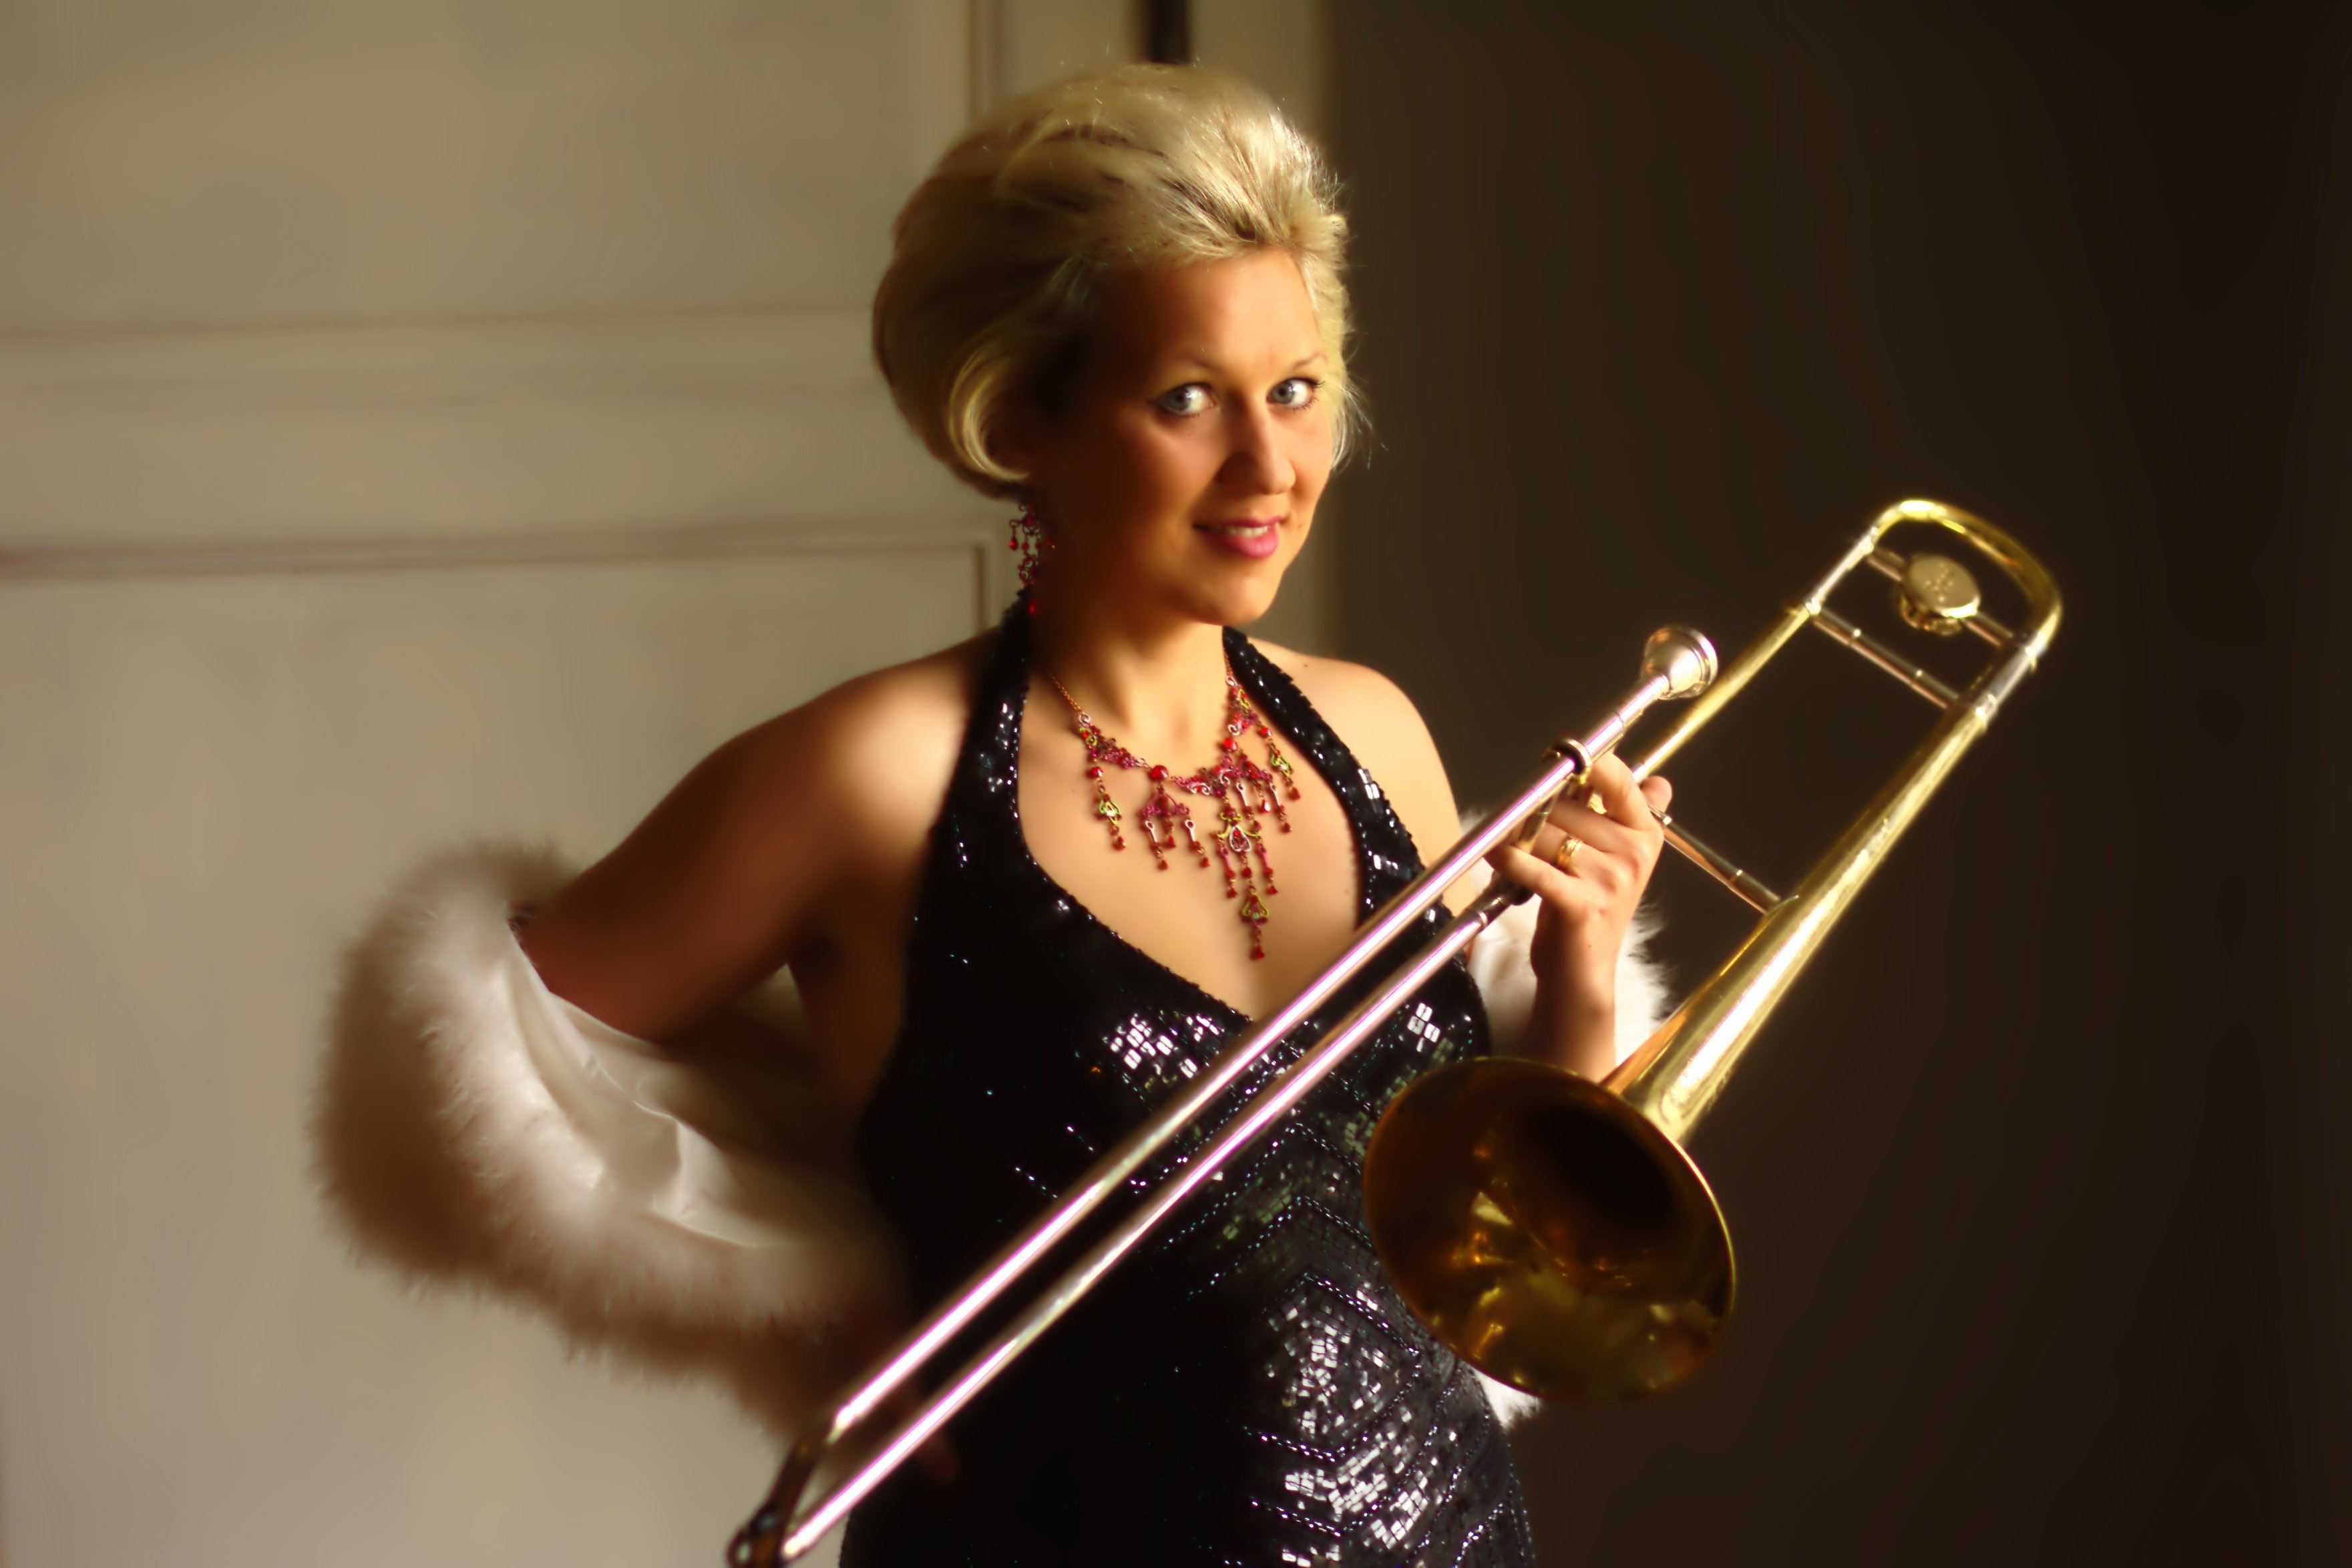 Gunhild Carling & Carling Big Band Jazzvarité